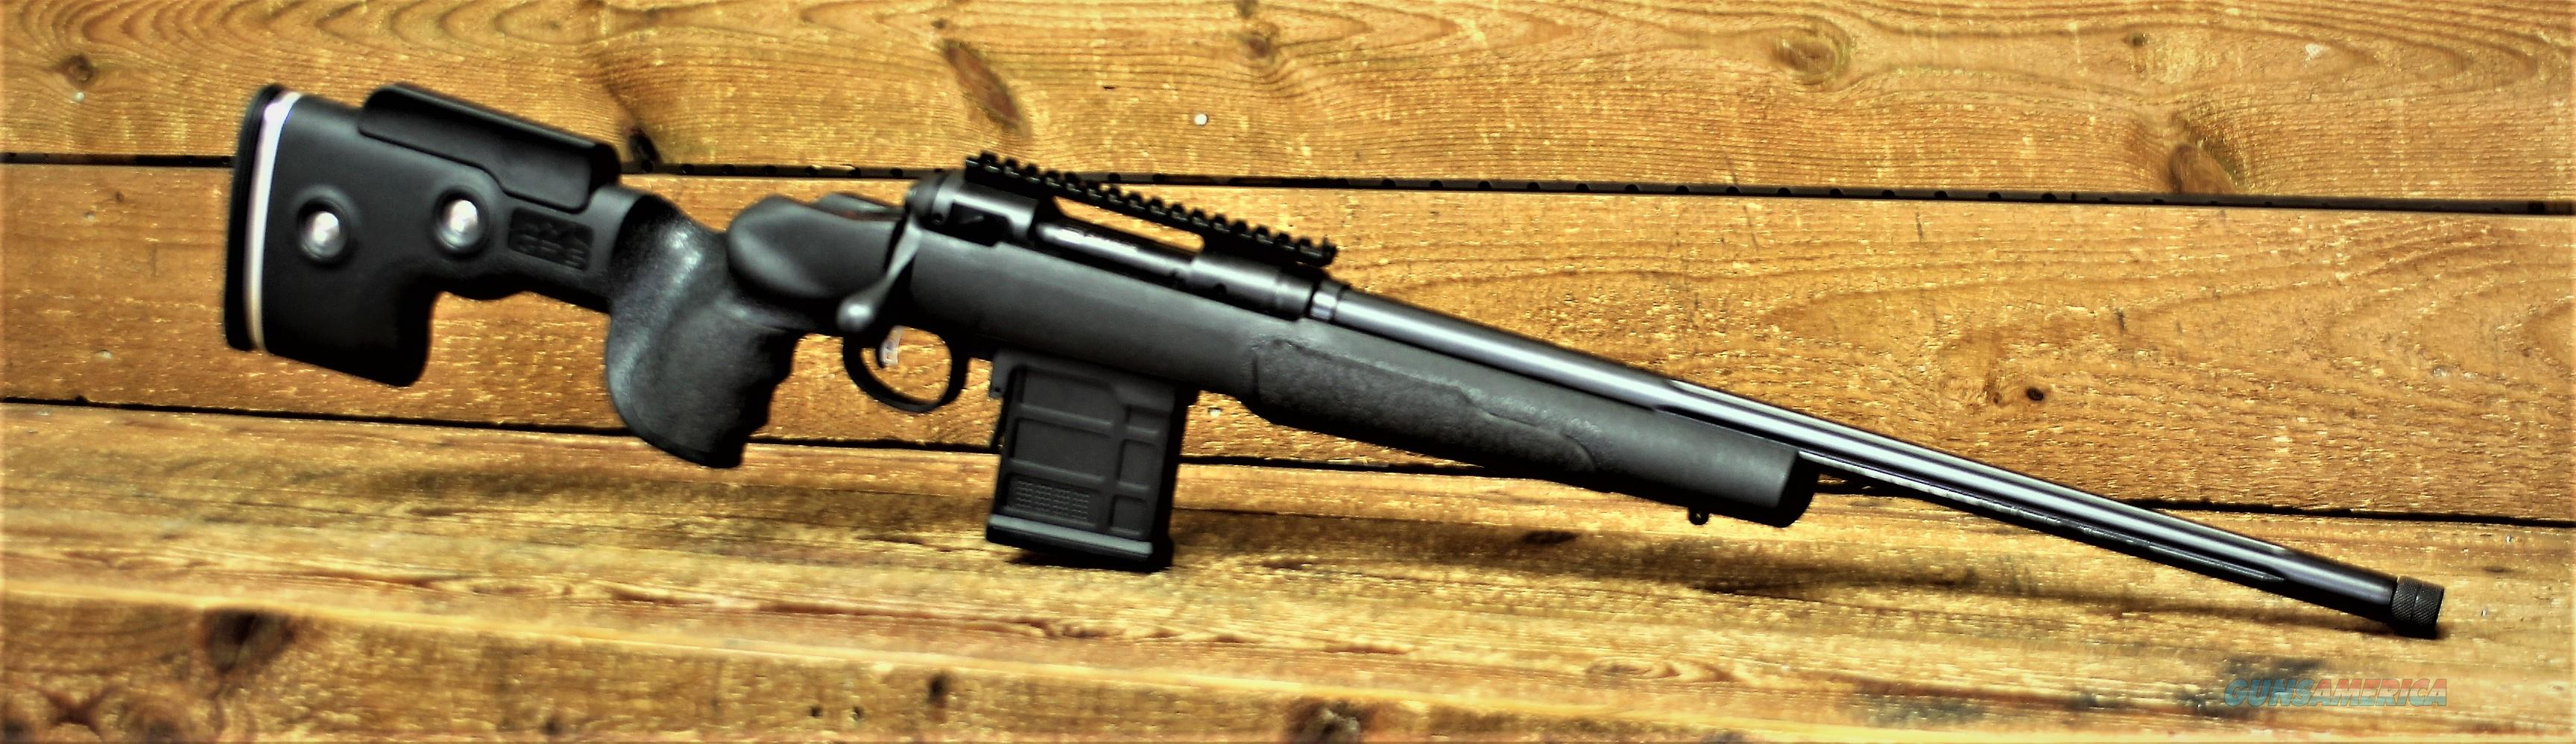 """EASY PAY $104 DOWN Savage 10GRS Long range Deer Hunting Sniper Target Shooting 308/7.62  1:10"""" twist  20"""" barrel Heavy Fluted Threaded For muzzle device Barrel 10 Rounds Hunter AccuTrigger GRS Adjustable Picatinny rail Stock  Black 22599   Guns > Rifles > Savage Rifles > Other"""